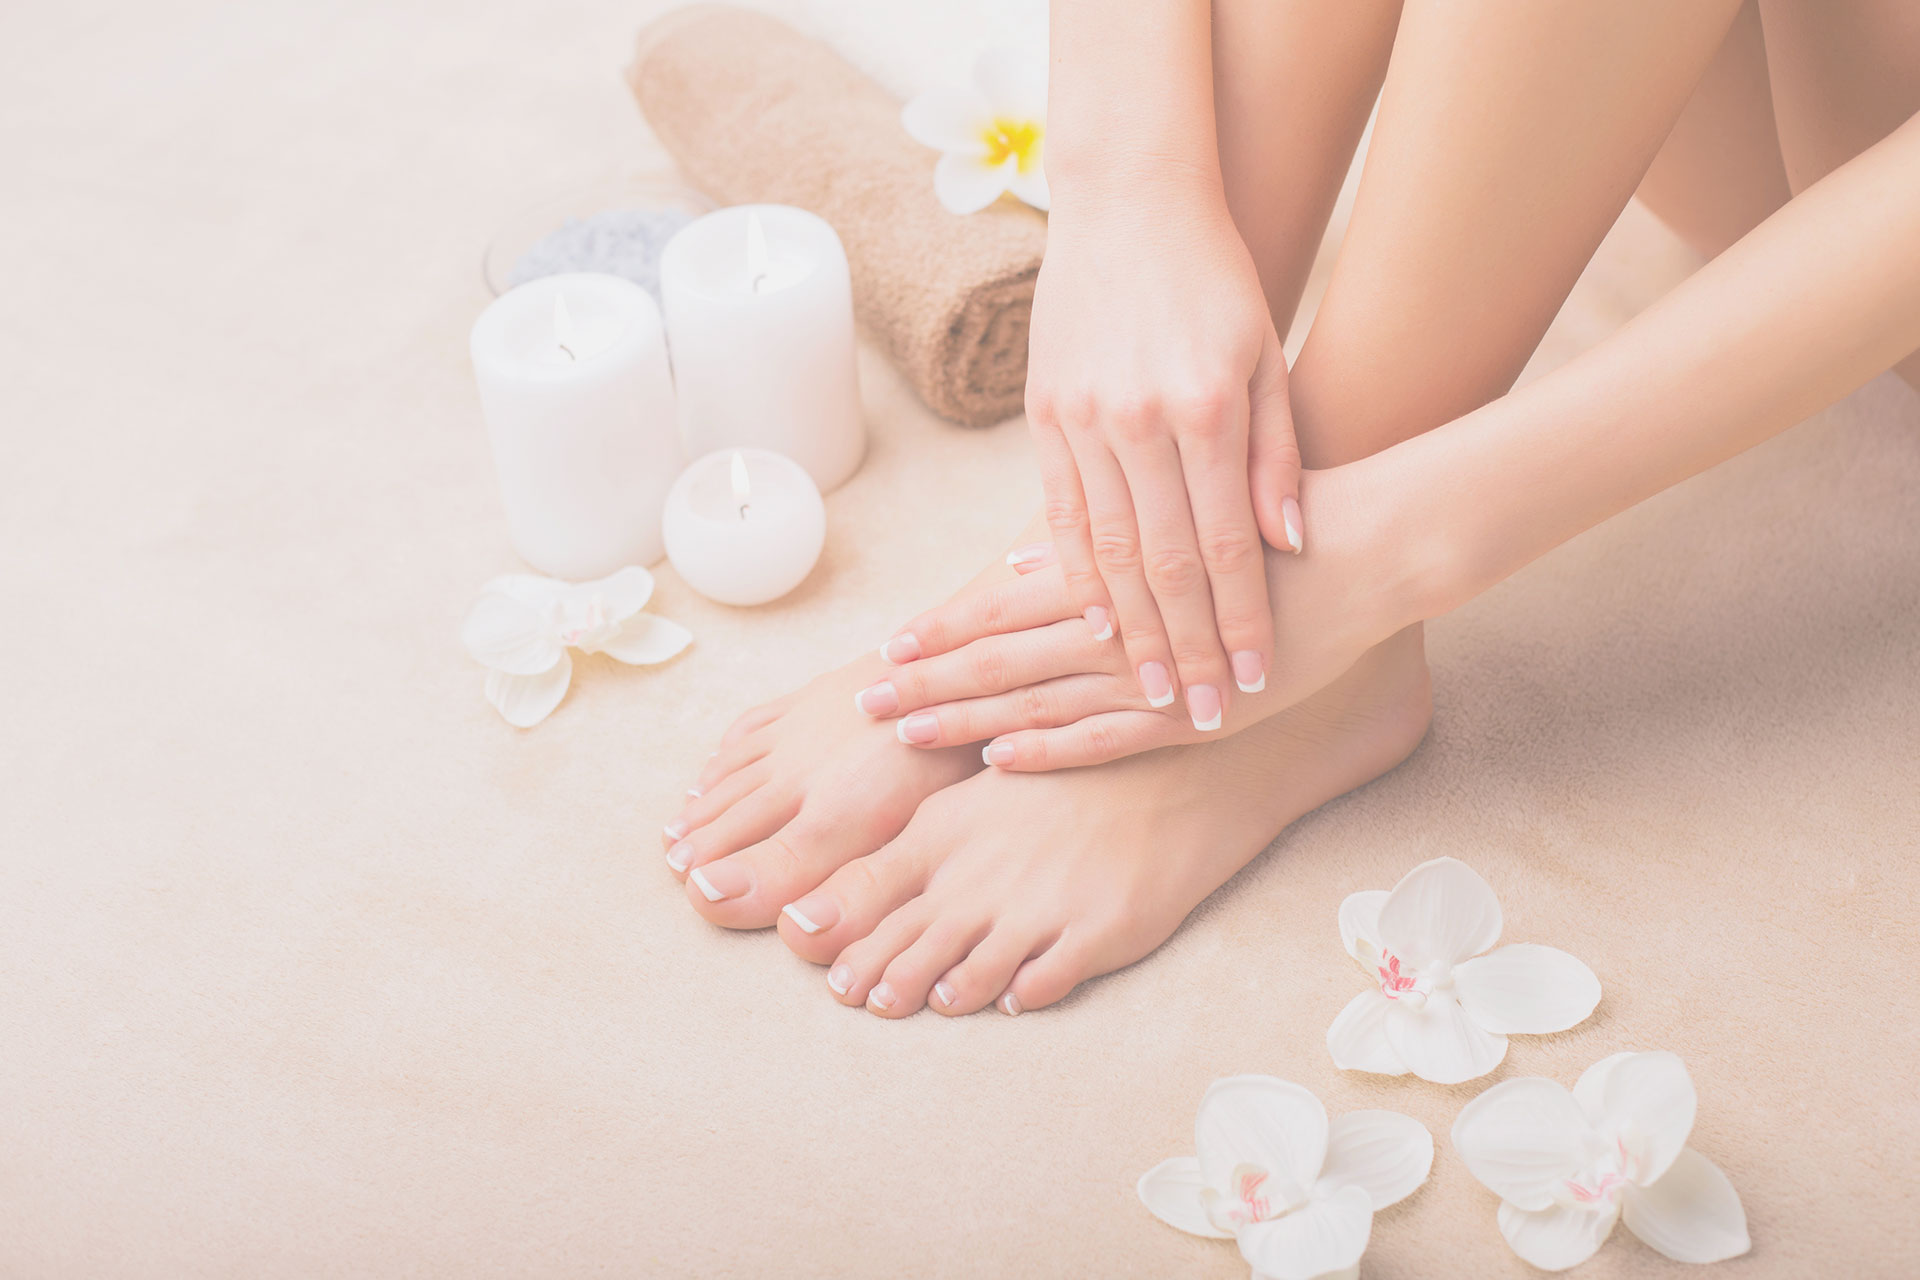 mani/pedi feet & hands with flowers & candles